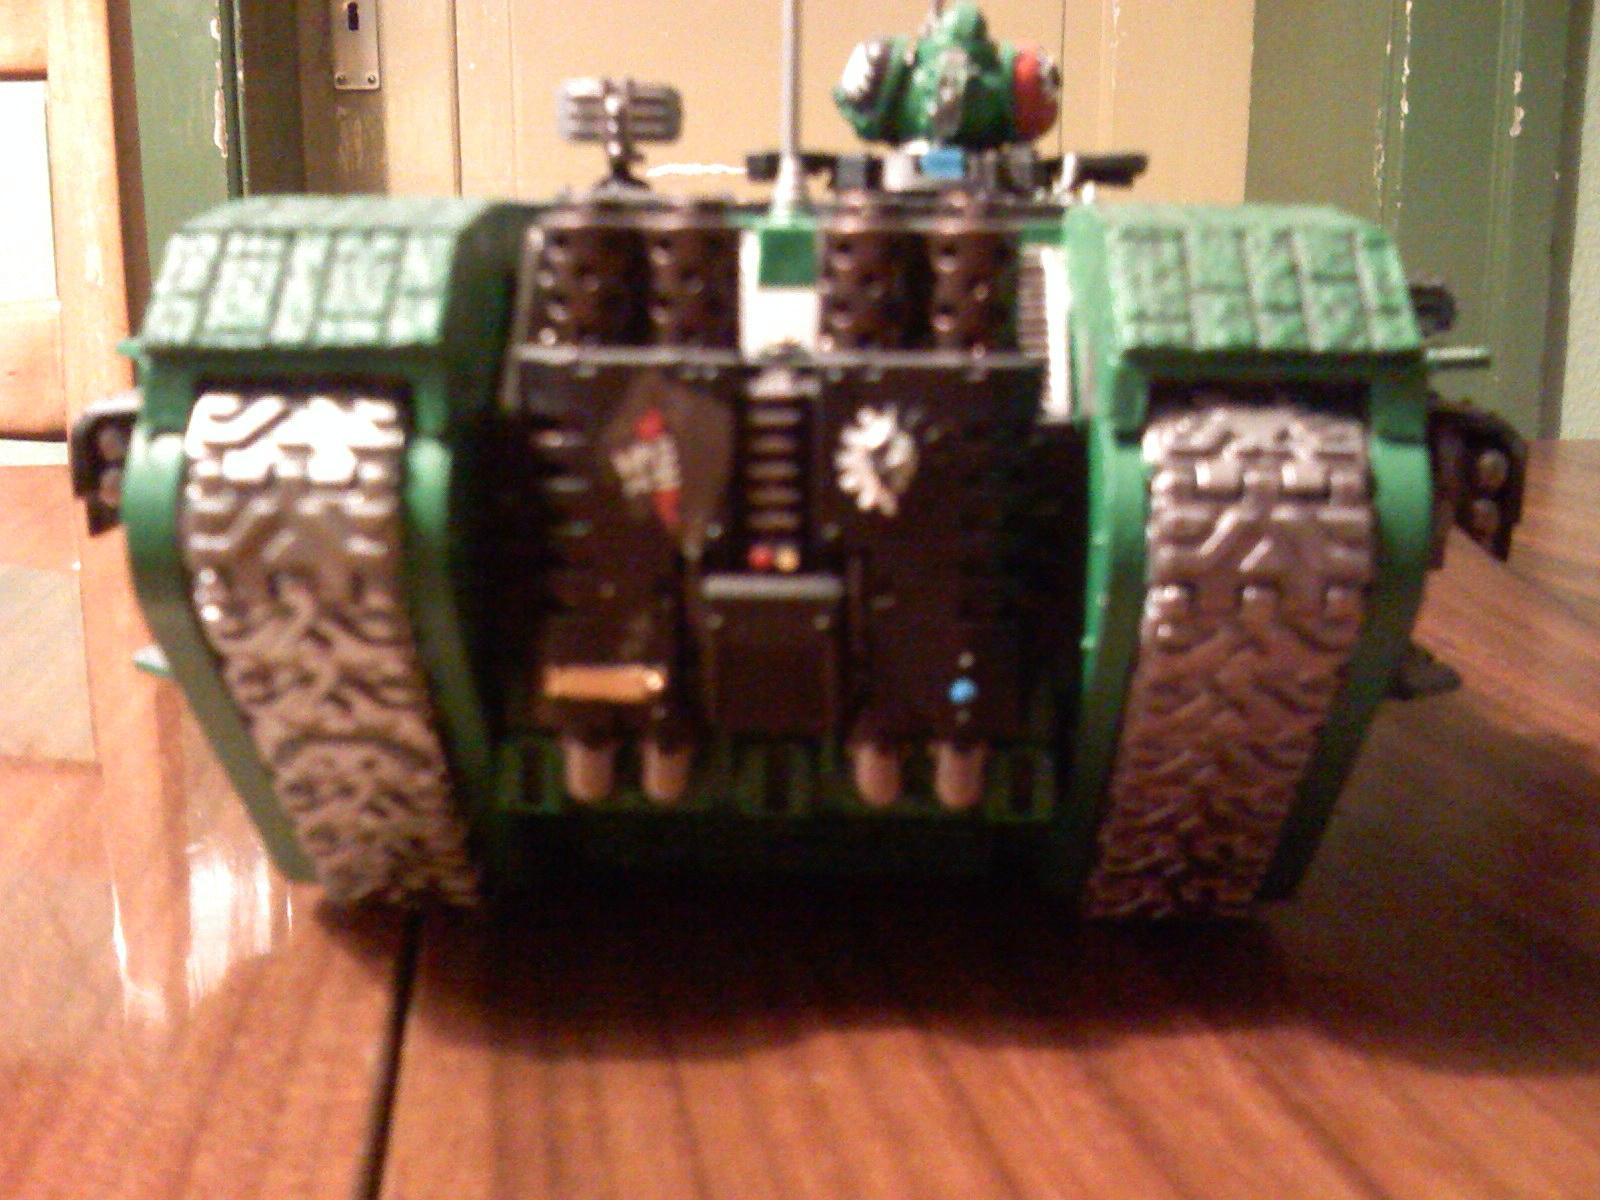 Land Raider, Salamanders, Space Marines, Warhammer 40,000